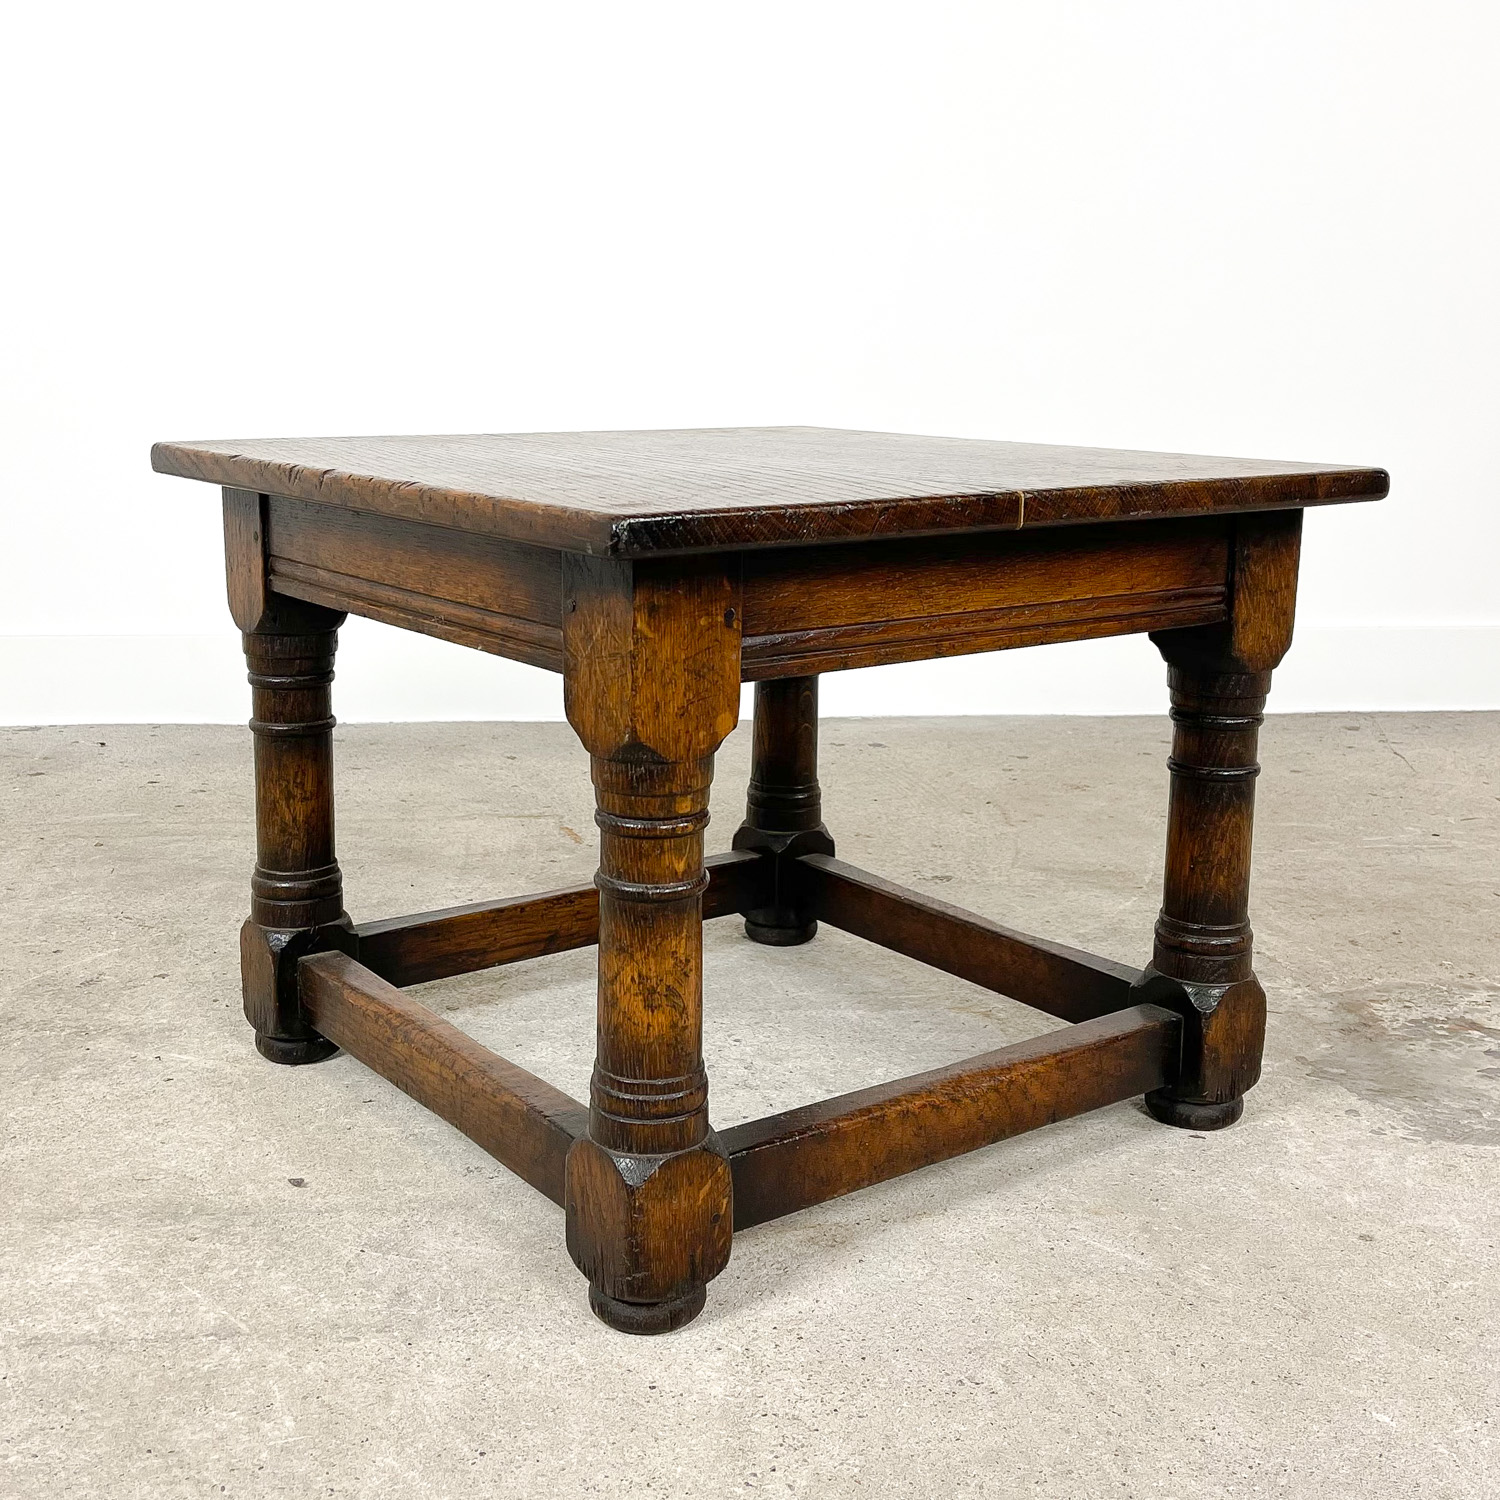 Small square oak coffee table